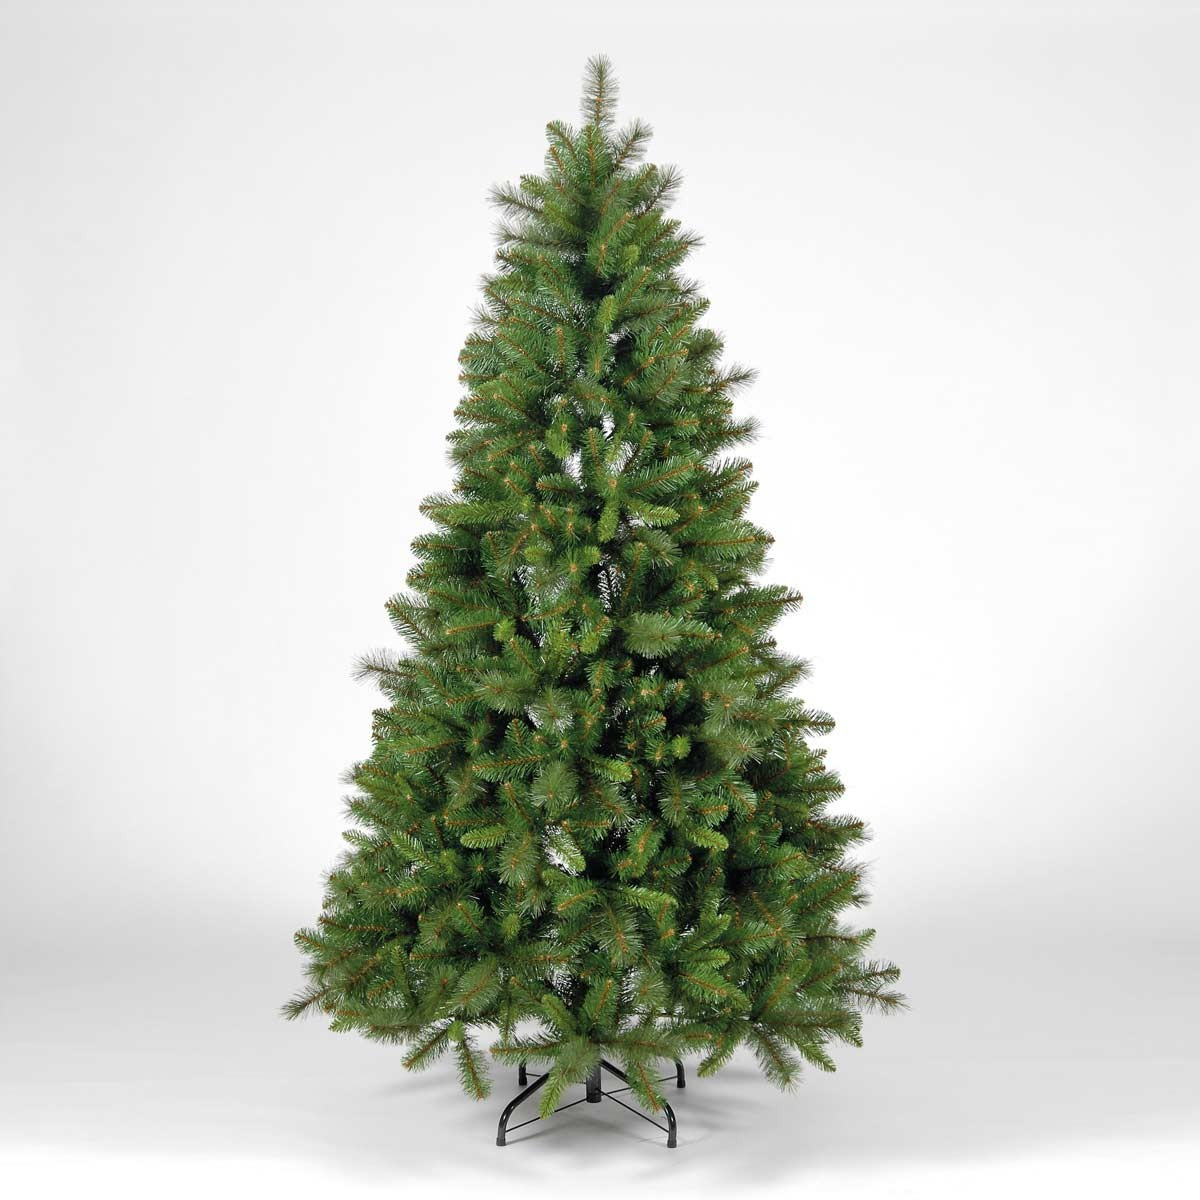 Pine Christmas Tree With Lights & Ornaments - Easy To Assemble (10 Feet)